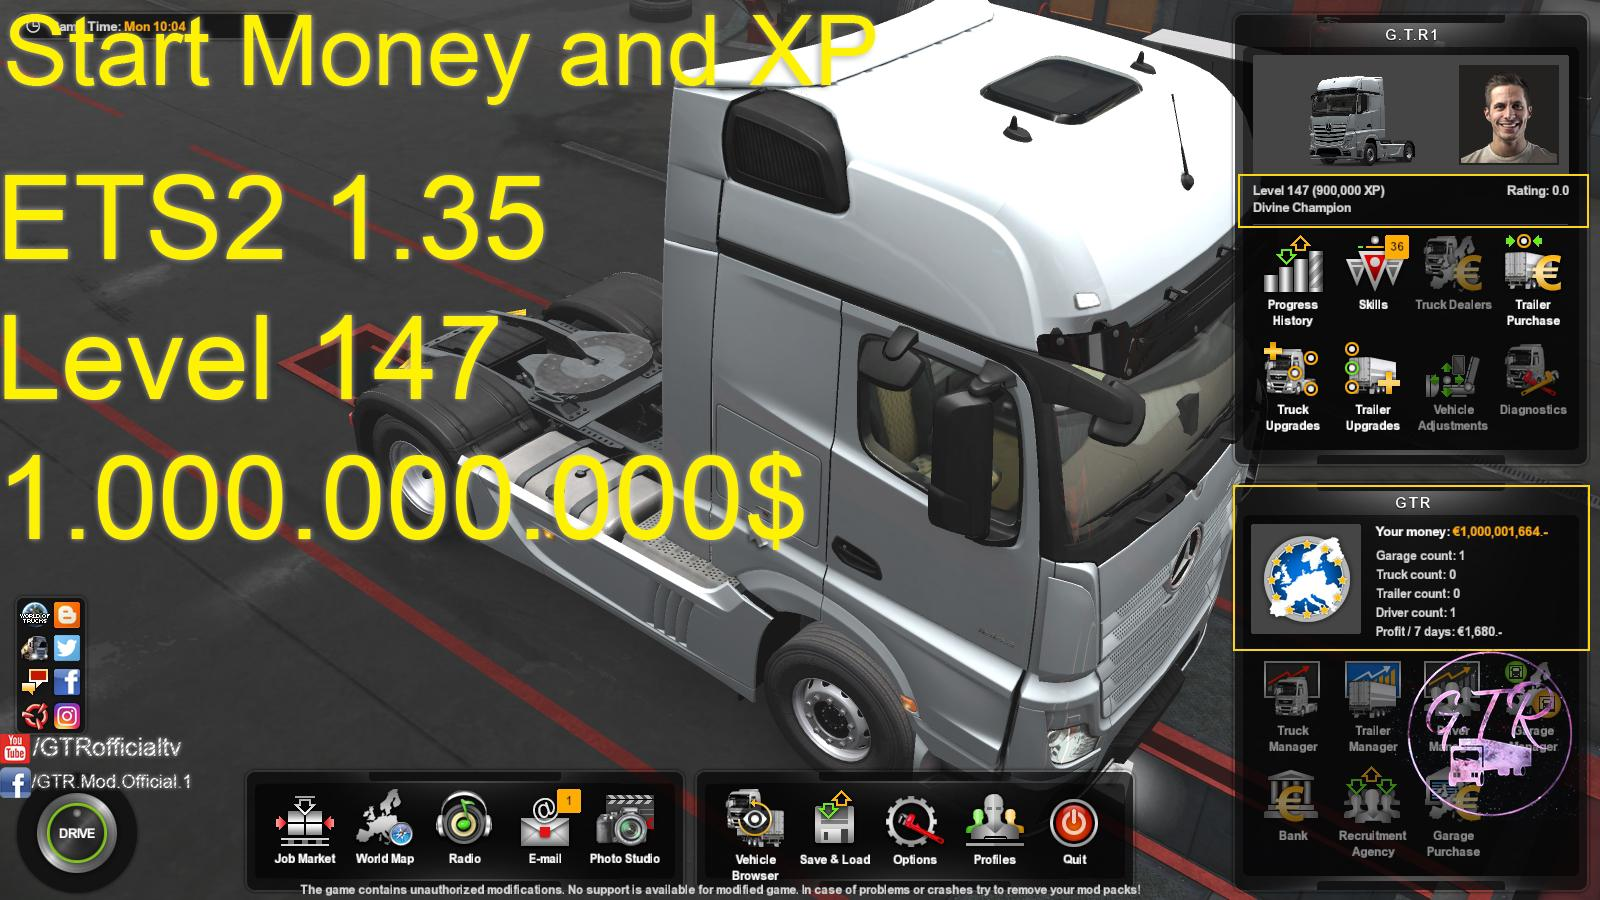 START MONEY AND XP FOR ETS2 1.35.x